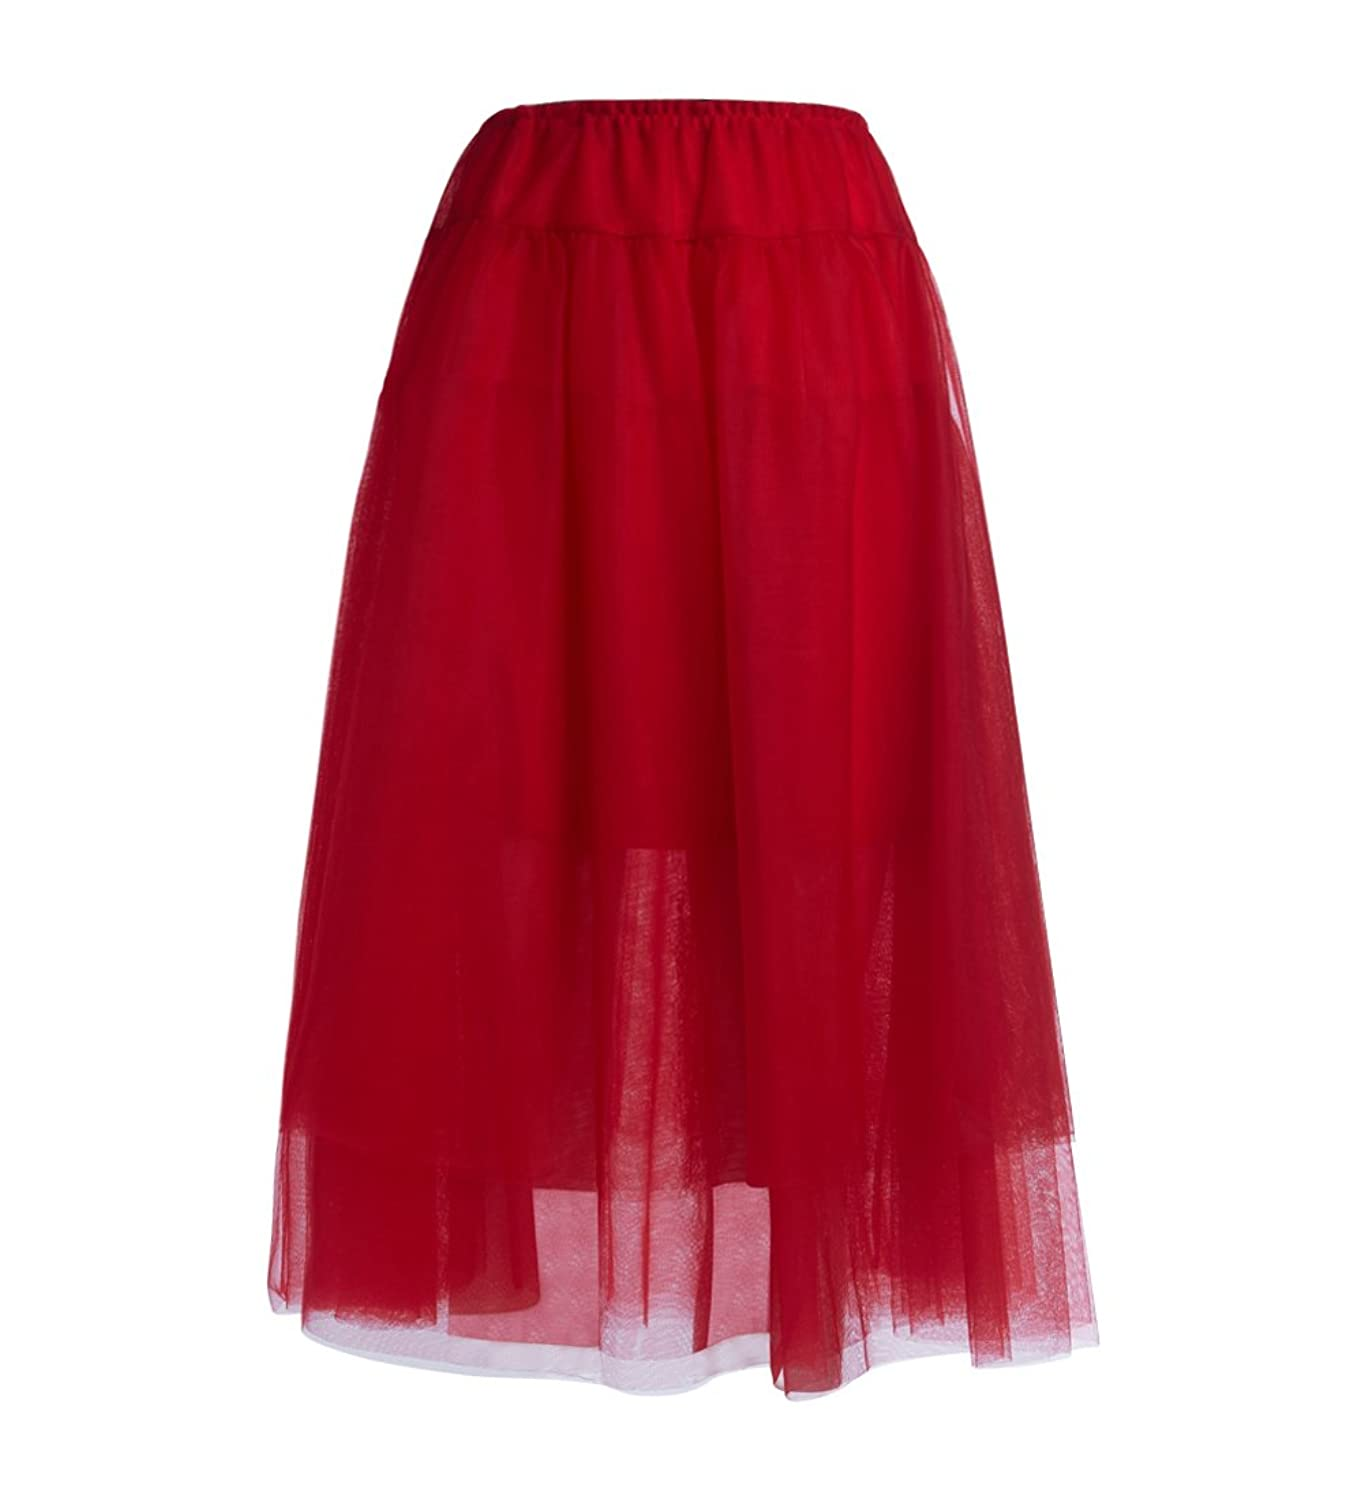 Gonna Twinset in tulle rosso